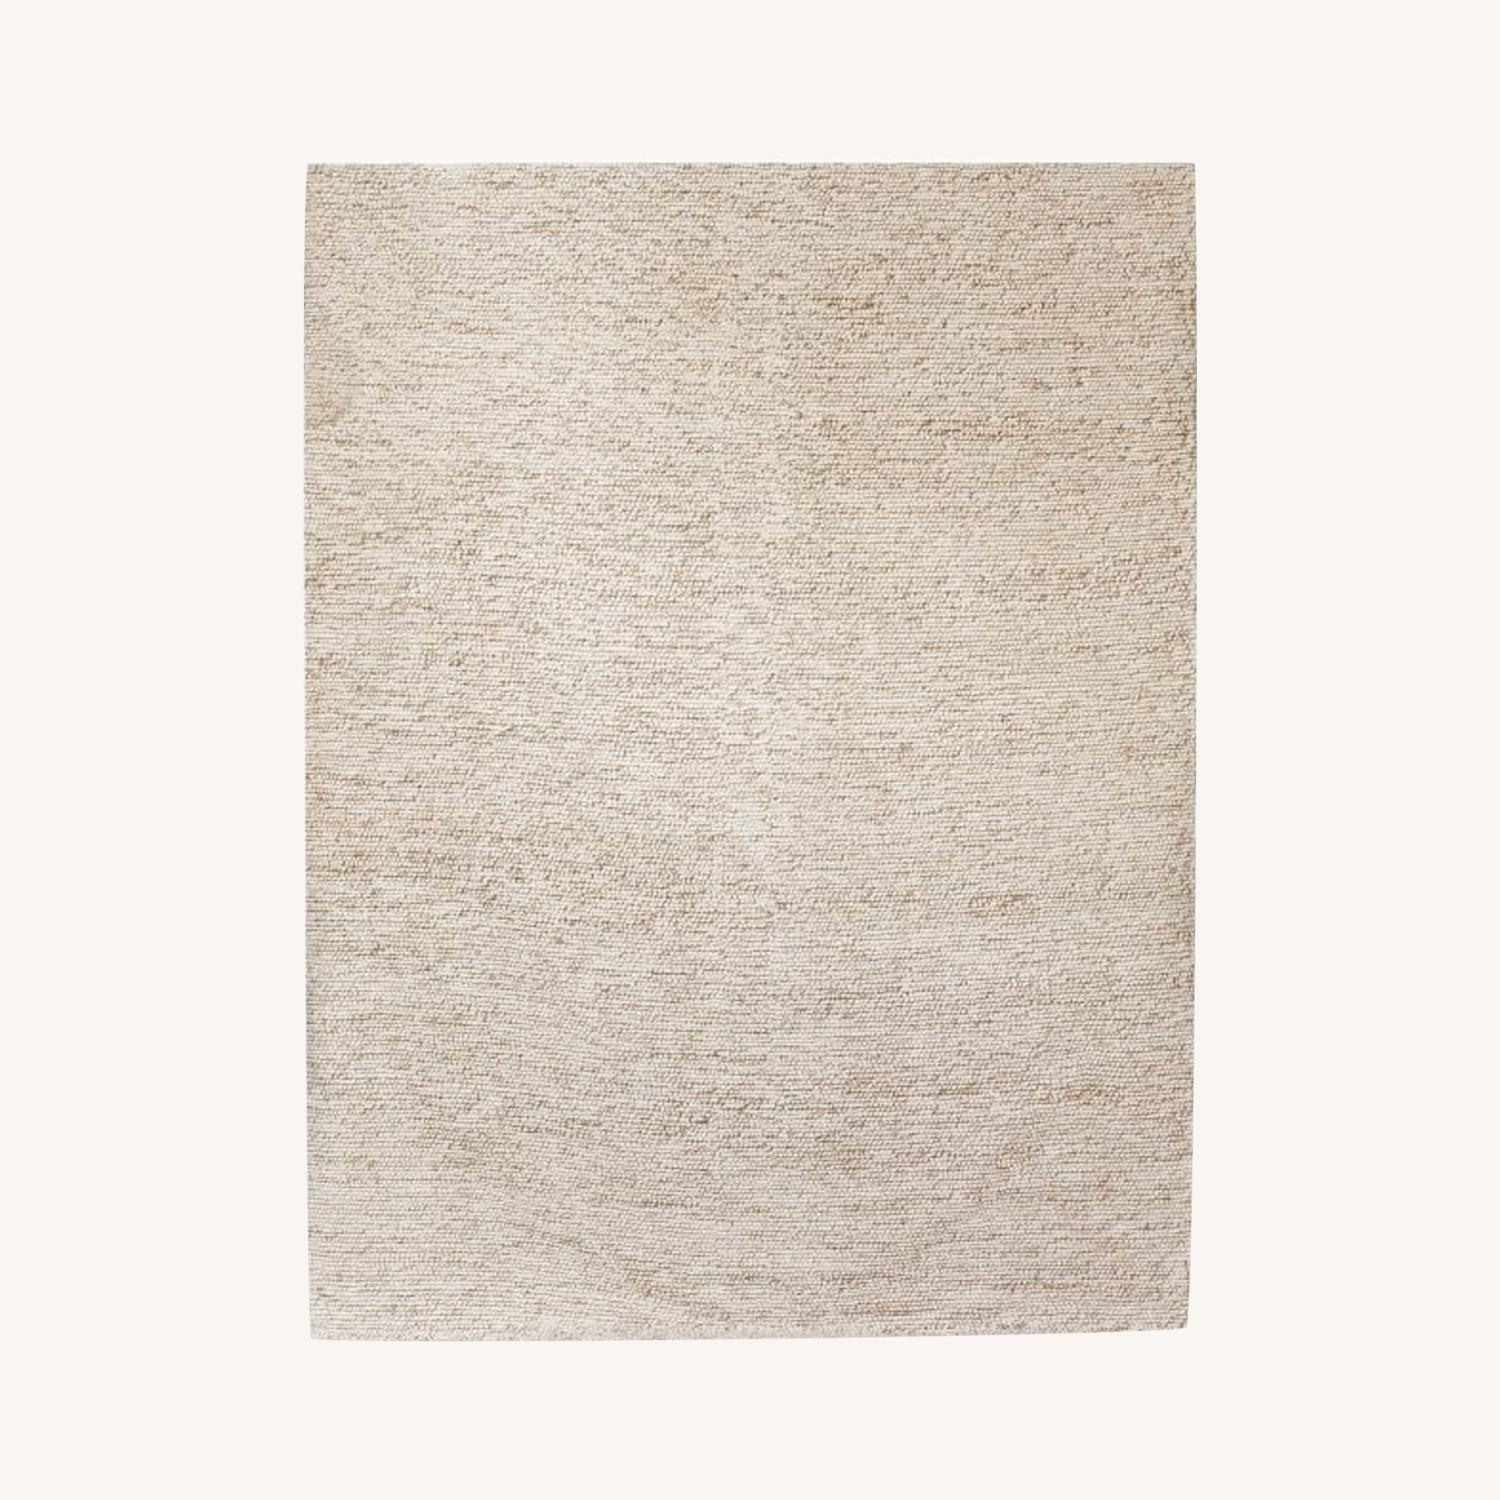 West Elm Mini Pebble Jute Wool Rug - image-0